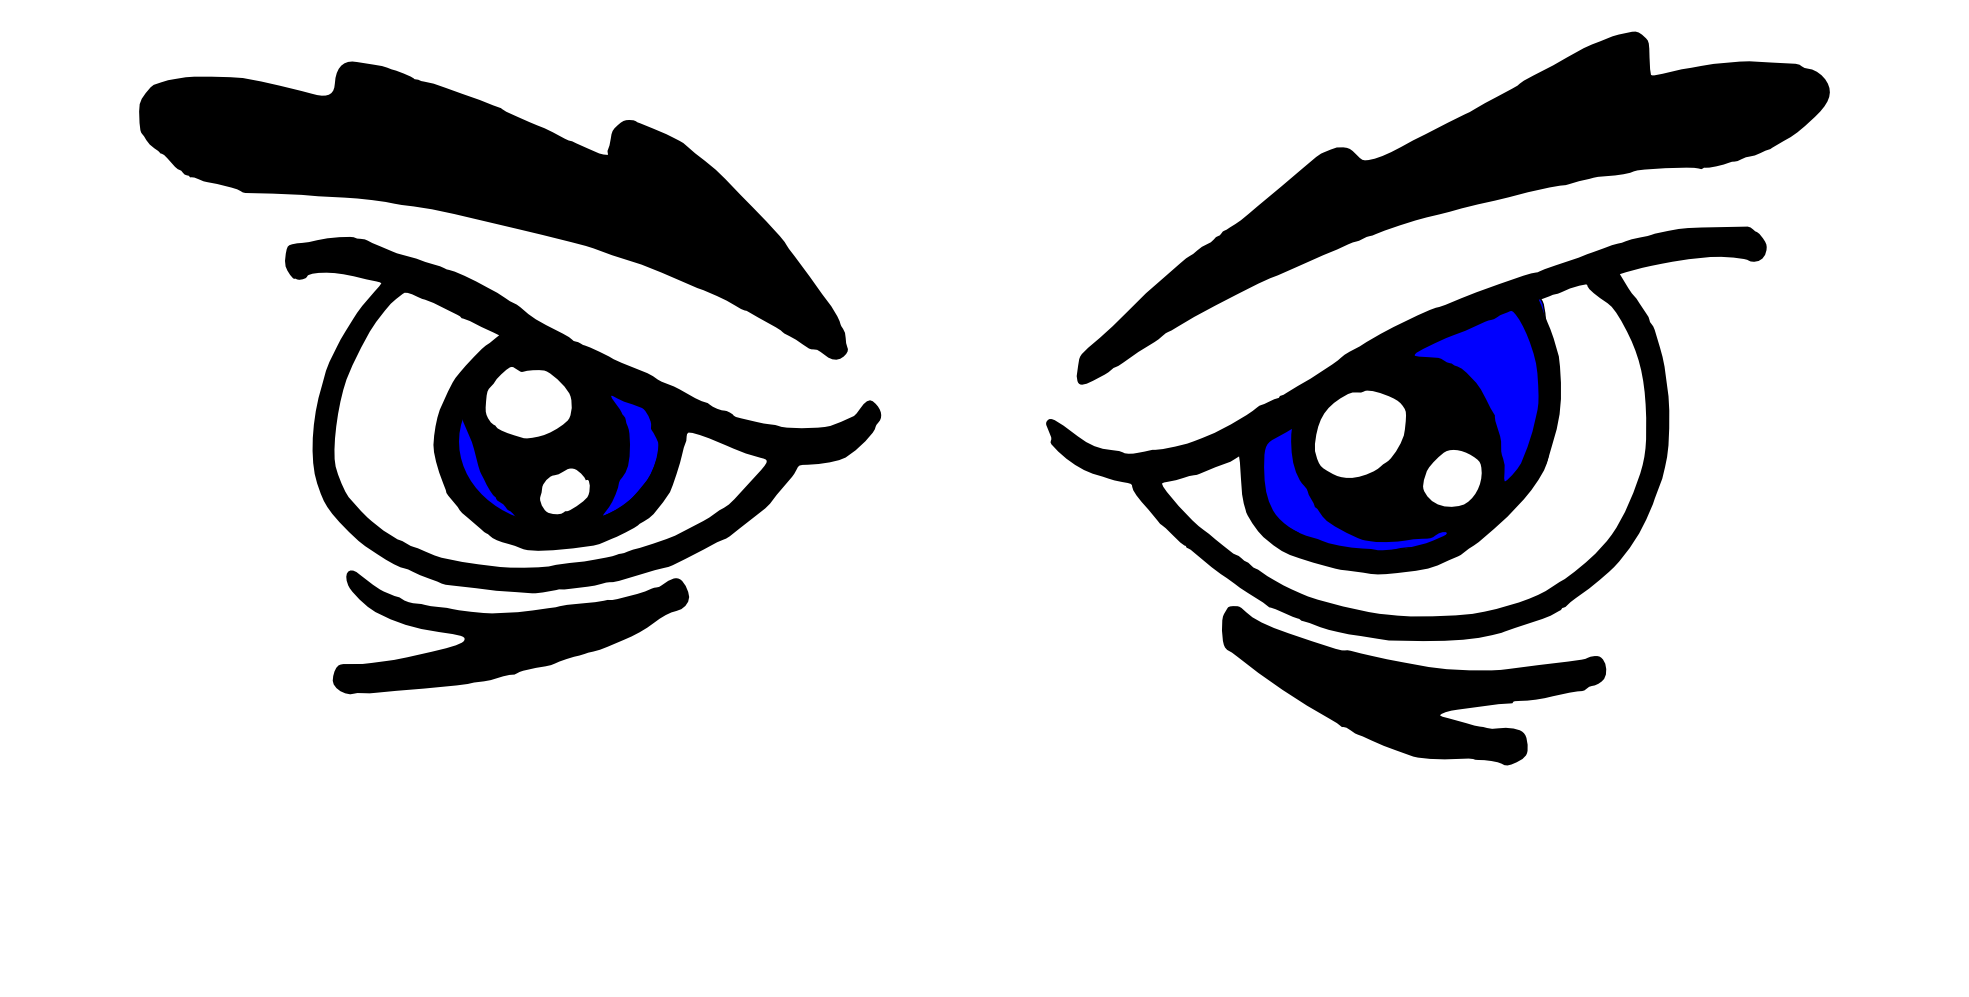 Eyes  black and white eye clipart black and white free images